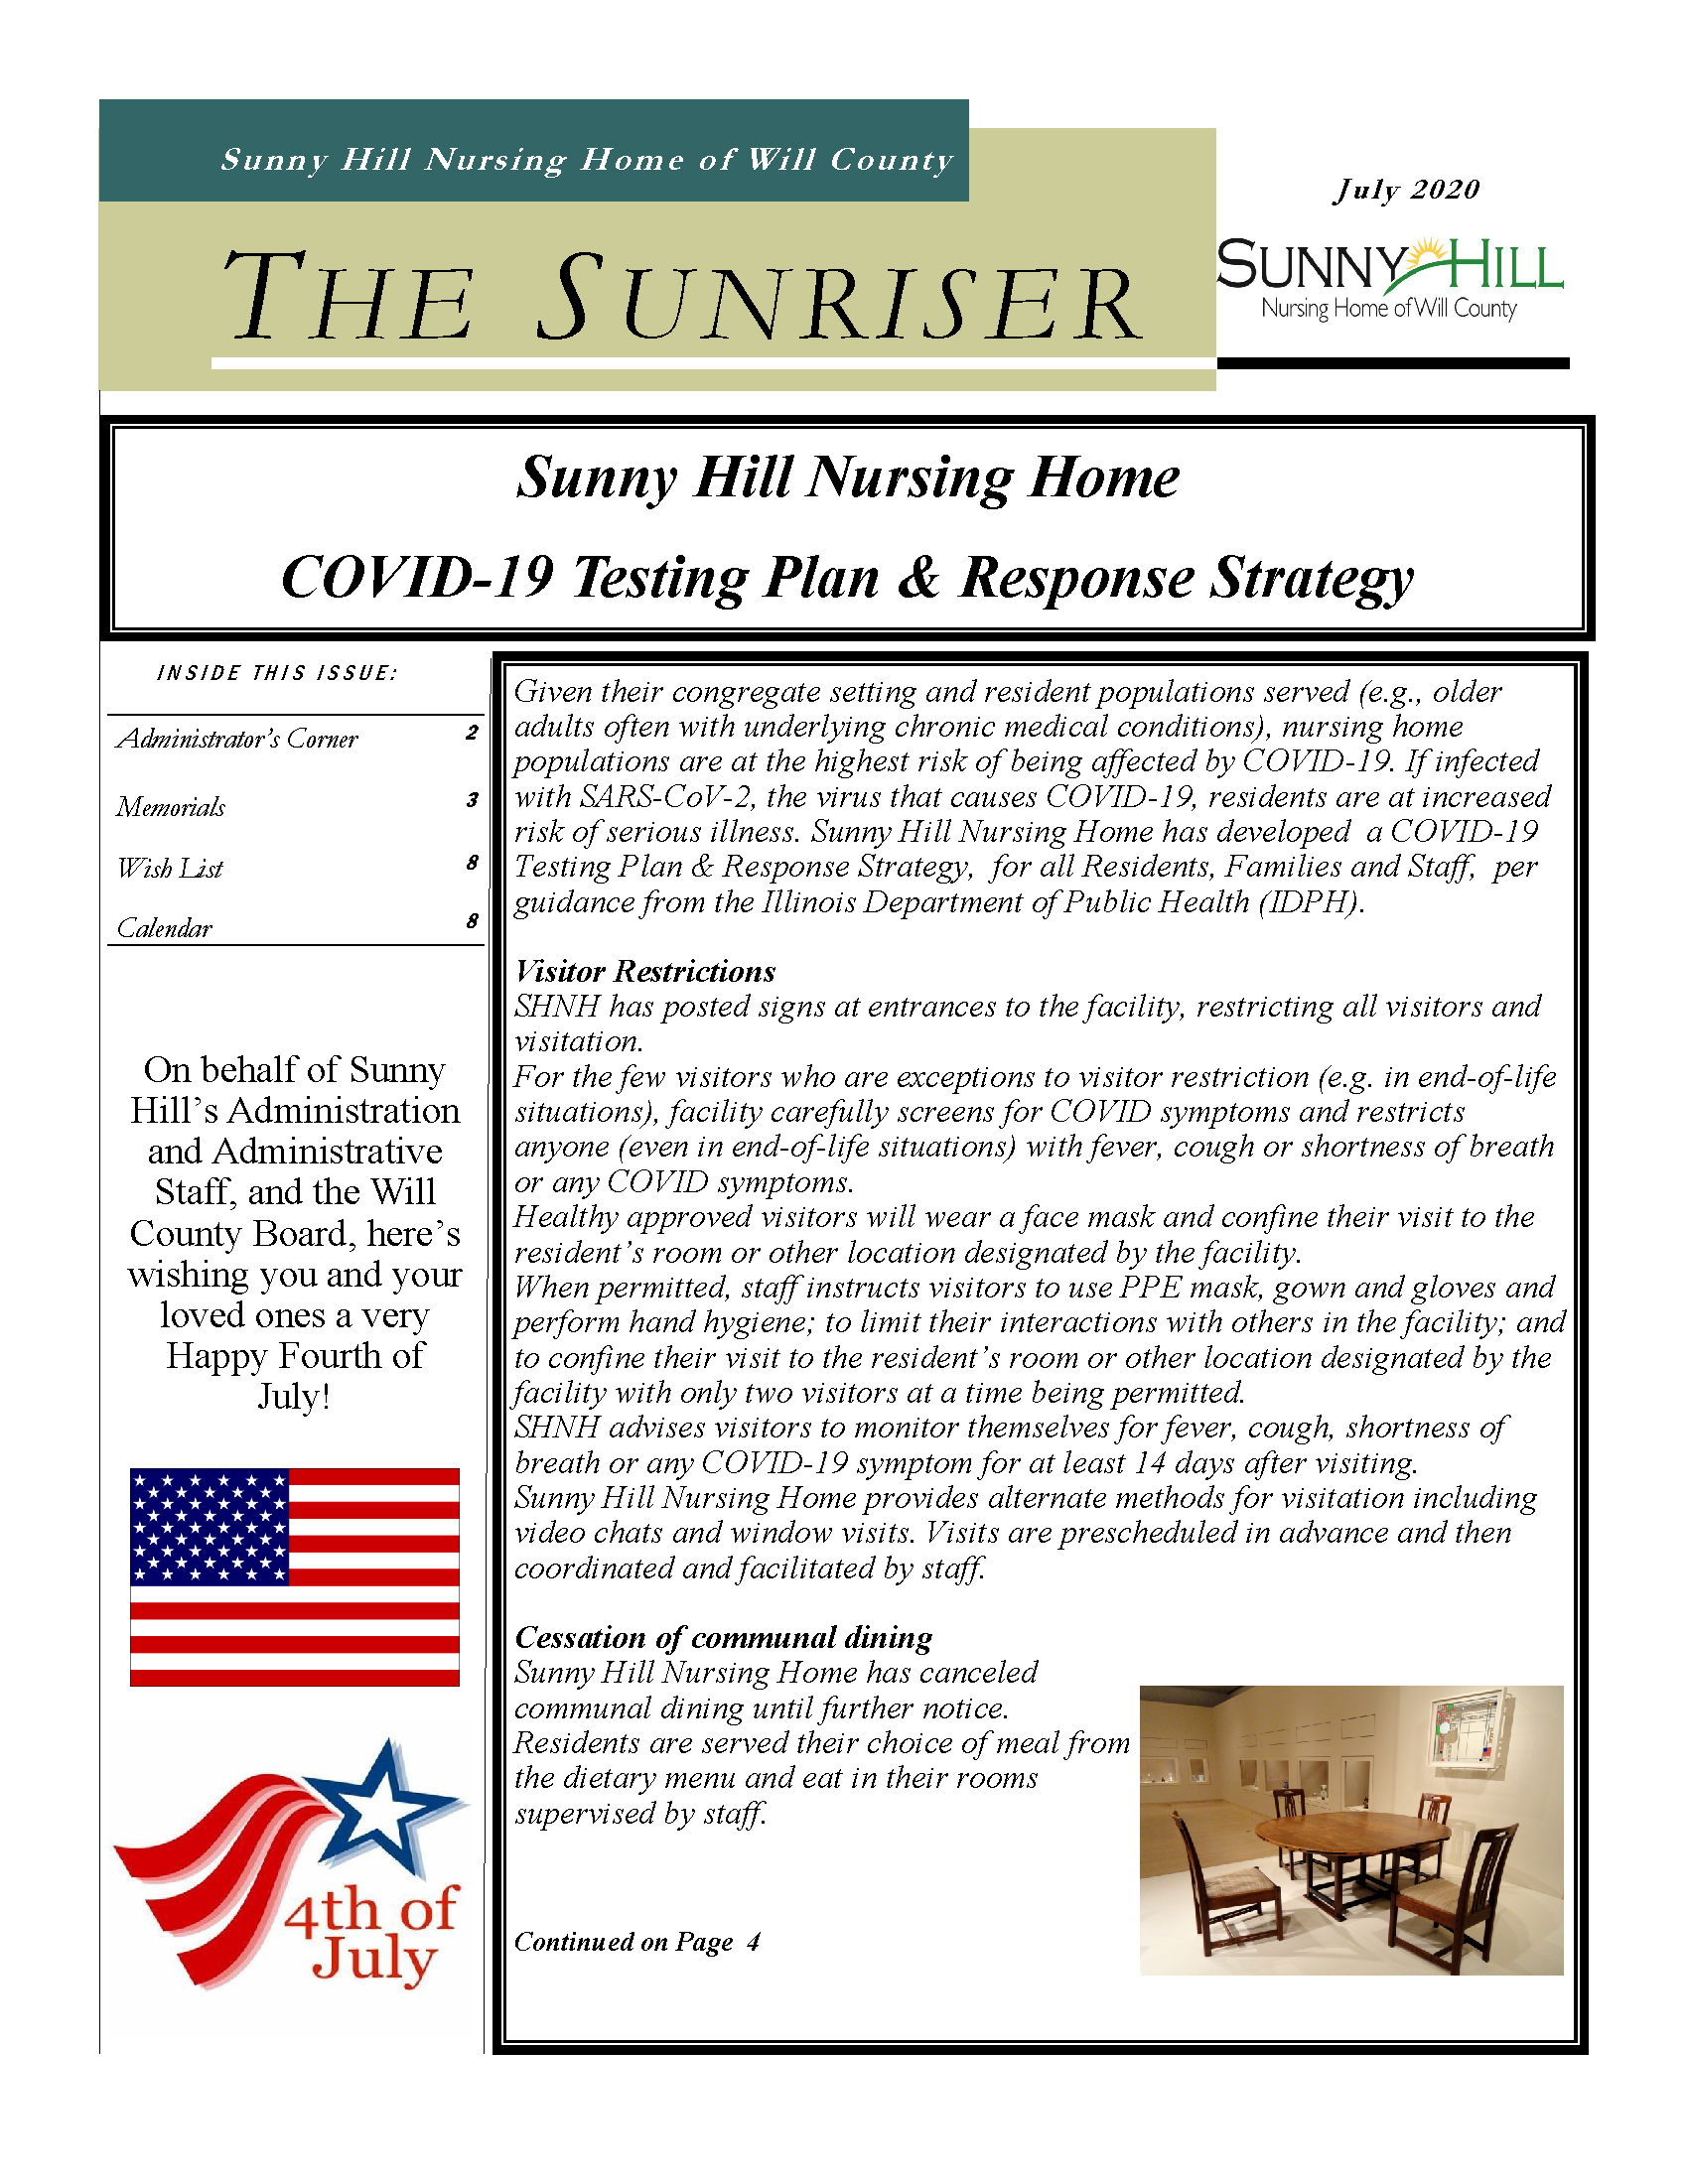 July 2020 Sunriser Cover Page